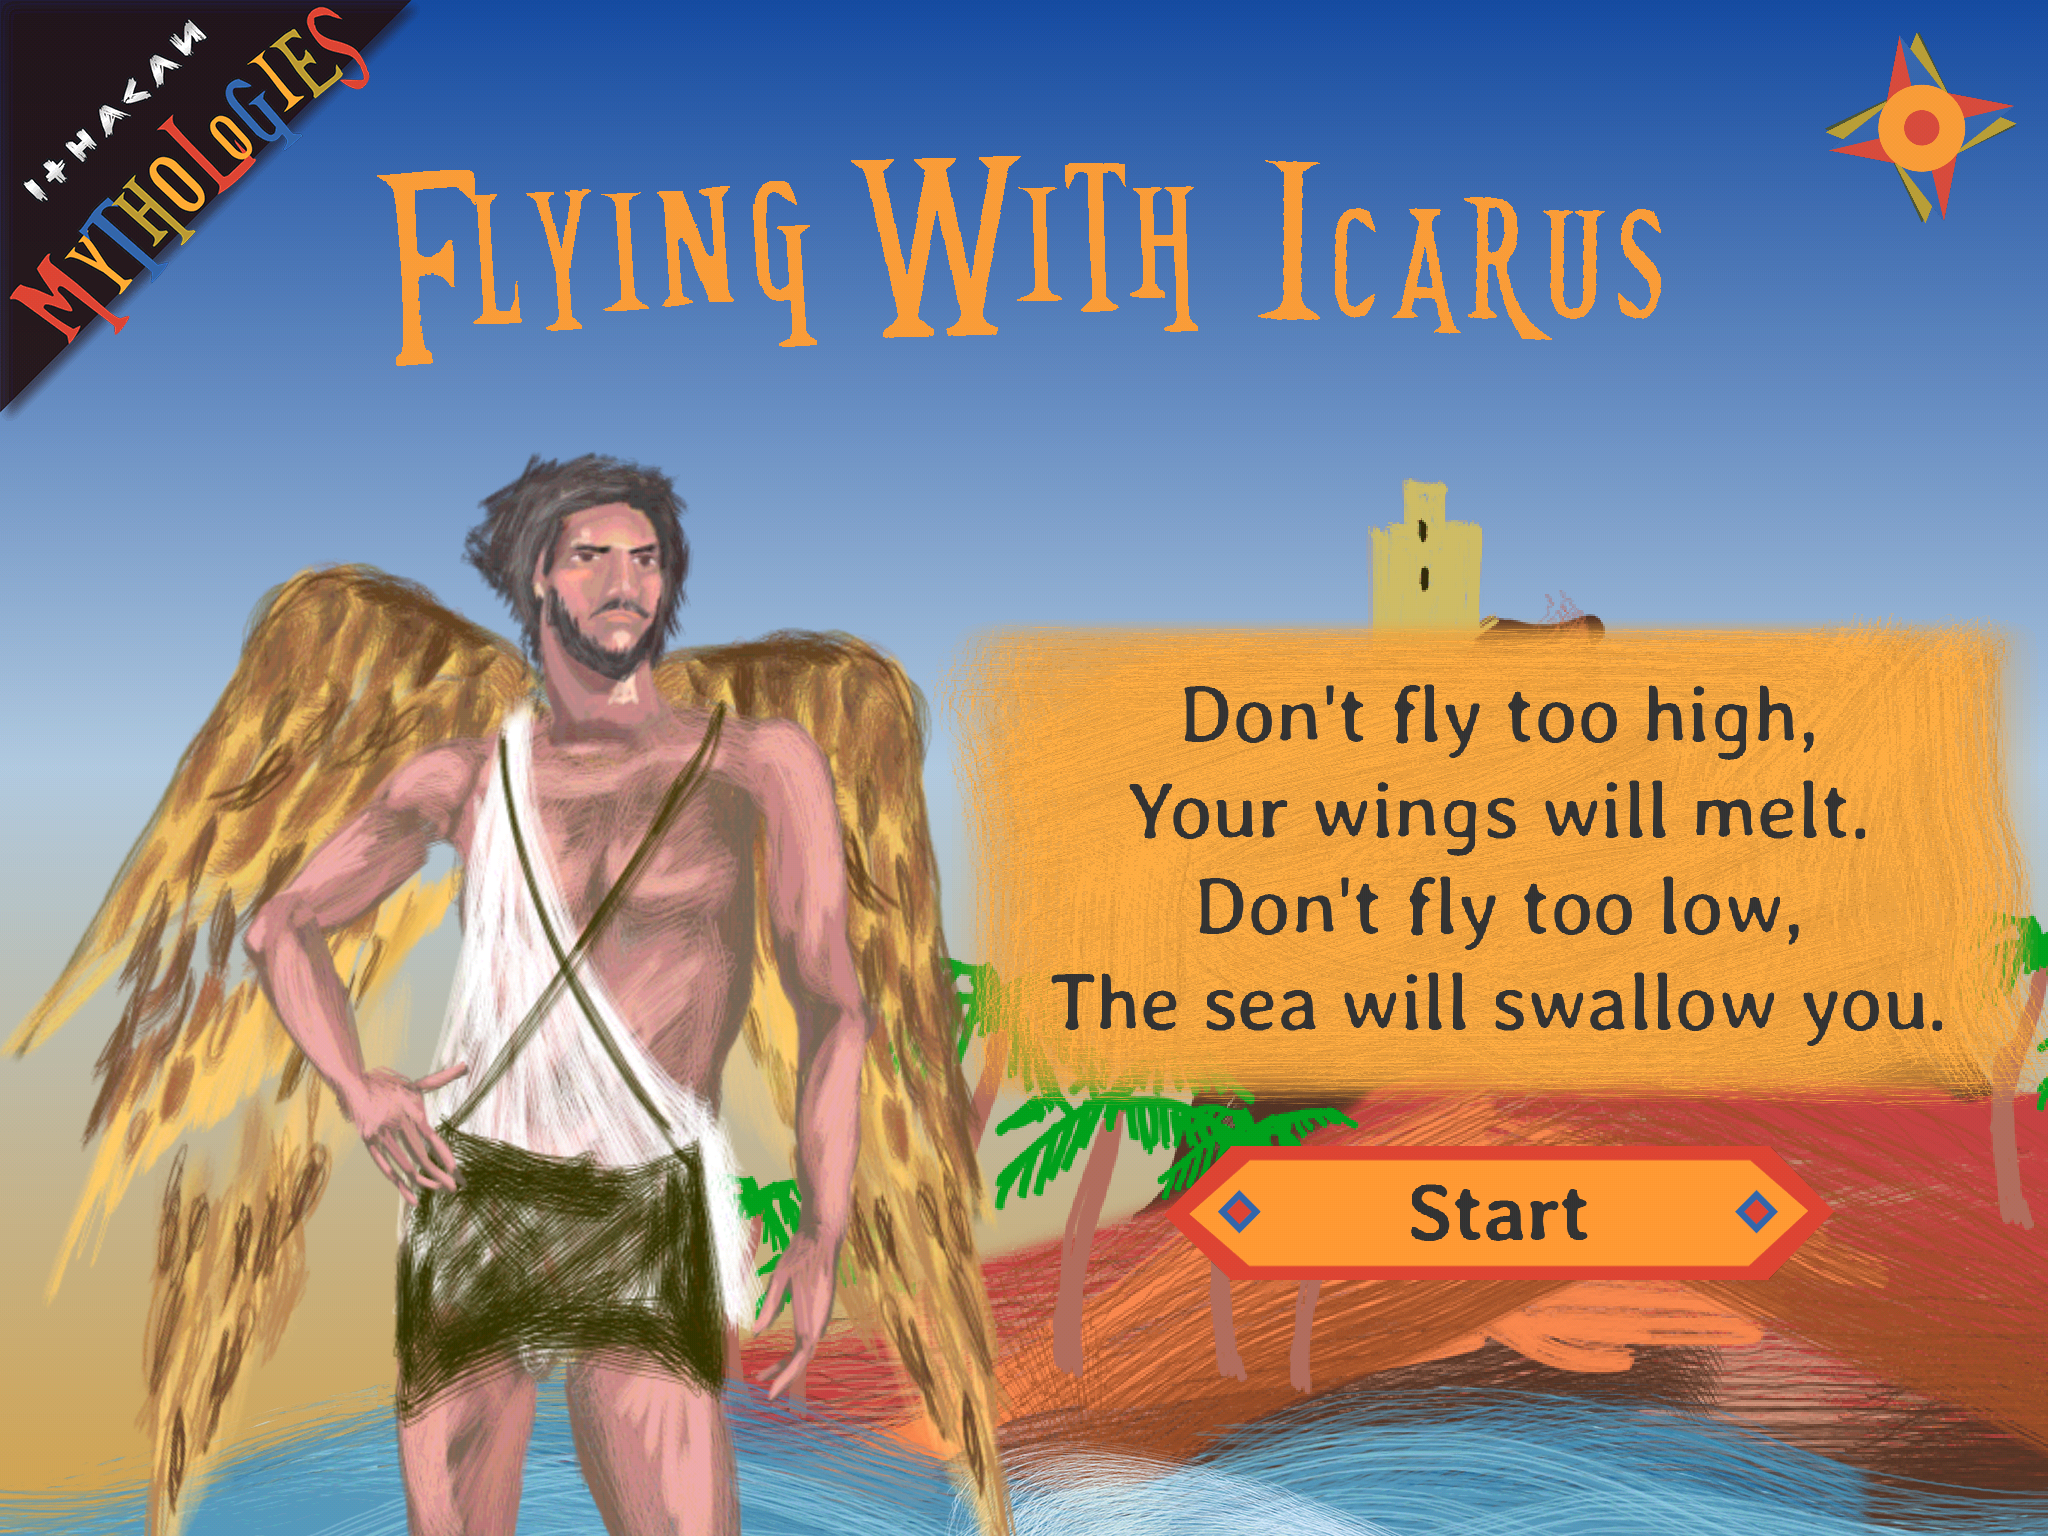 """""""Flying with Icarus"""" was published by Ithacan Media in 2016 and is available for iOS and Android.   We teamed up with children's book author Sofia Zarabouka as well as external developers and sound artists to create the game. As narrative designer I was responsible for the written content in the game's UI as well as helping determine its overall structure and mechanics. We created twelve levels for the game, based on Greek islands of mythological significance where father and son could rest as they flew from the Labyrinth in Crete to their new home in Sicily. Each level featured its own unique visual style, obstacles, and bonus items.   After its initial release we updated the game to feature in-app purchases and localization into five languages."""